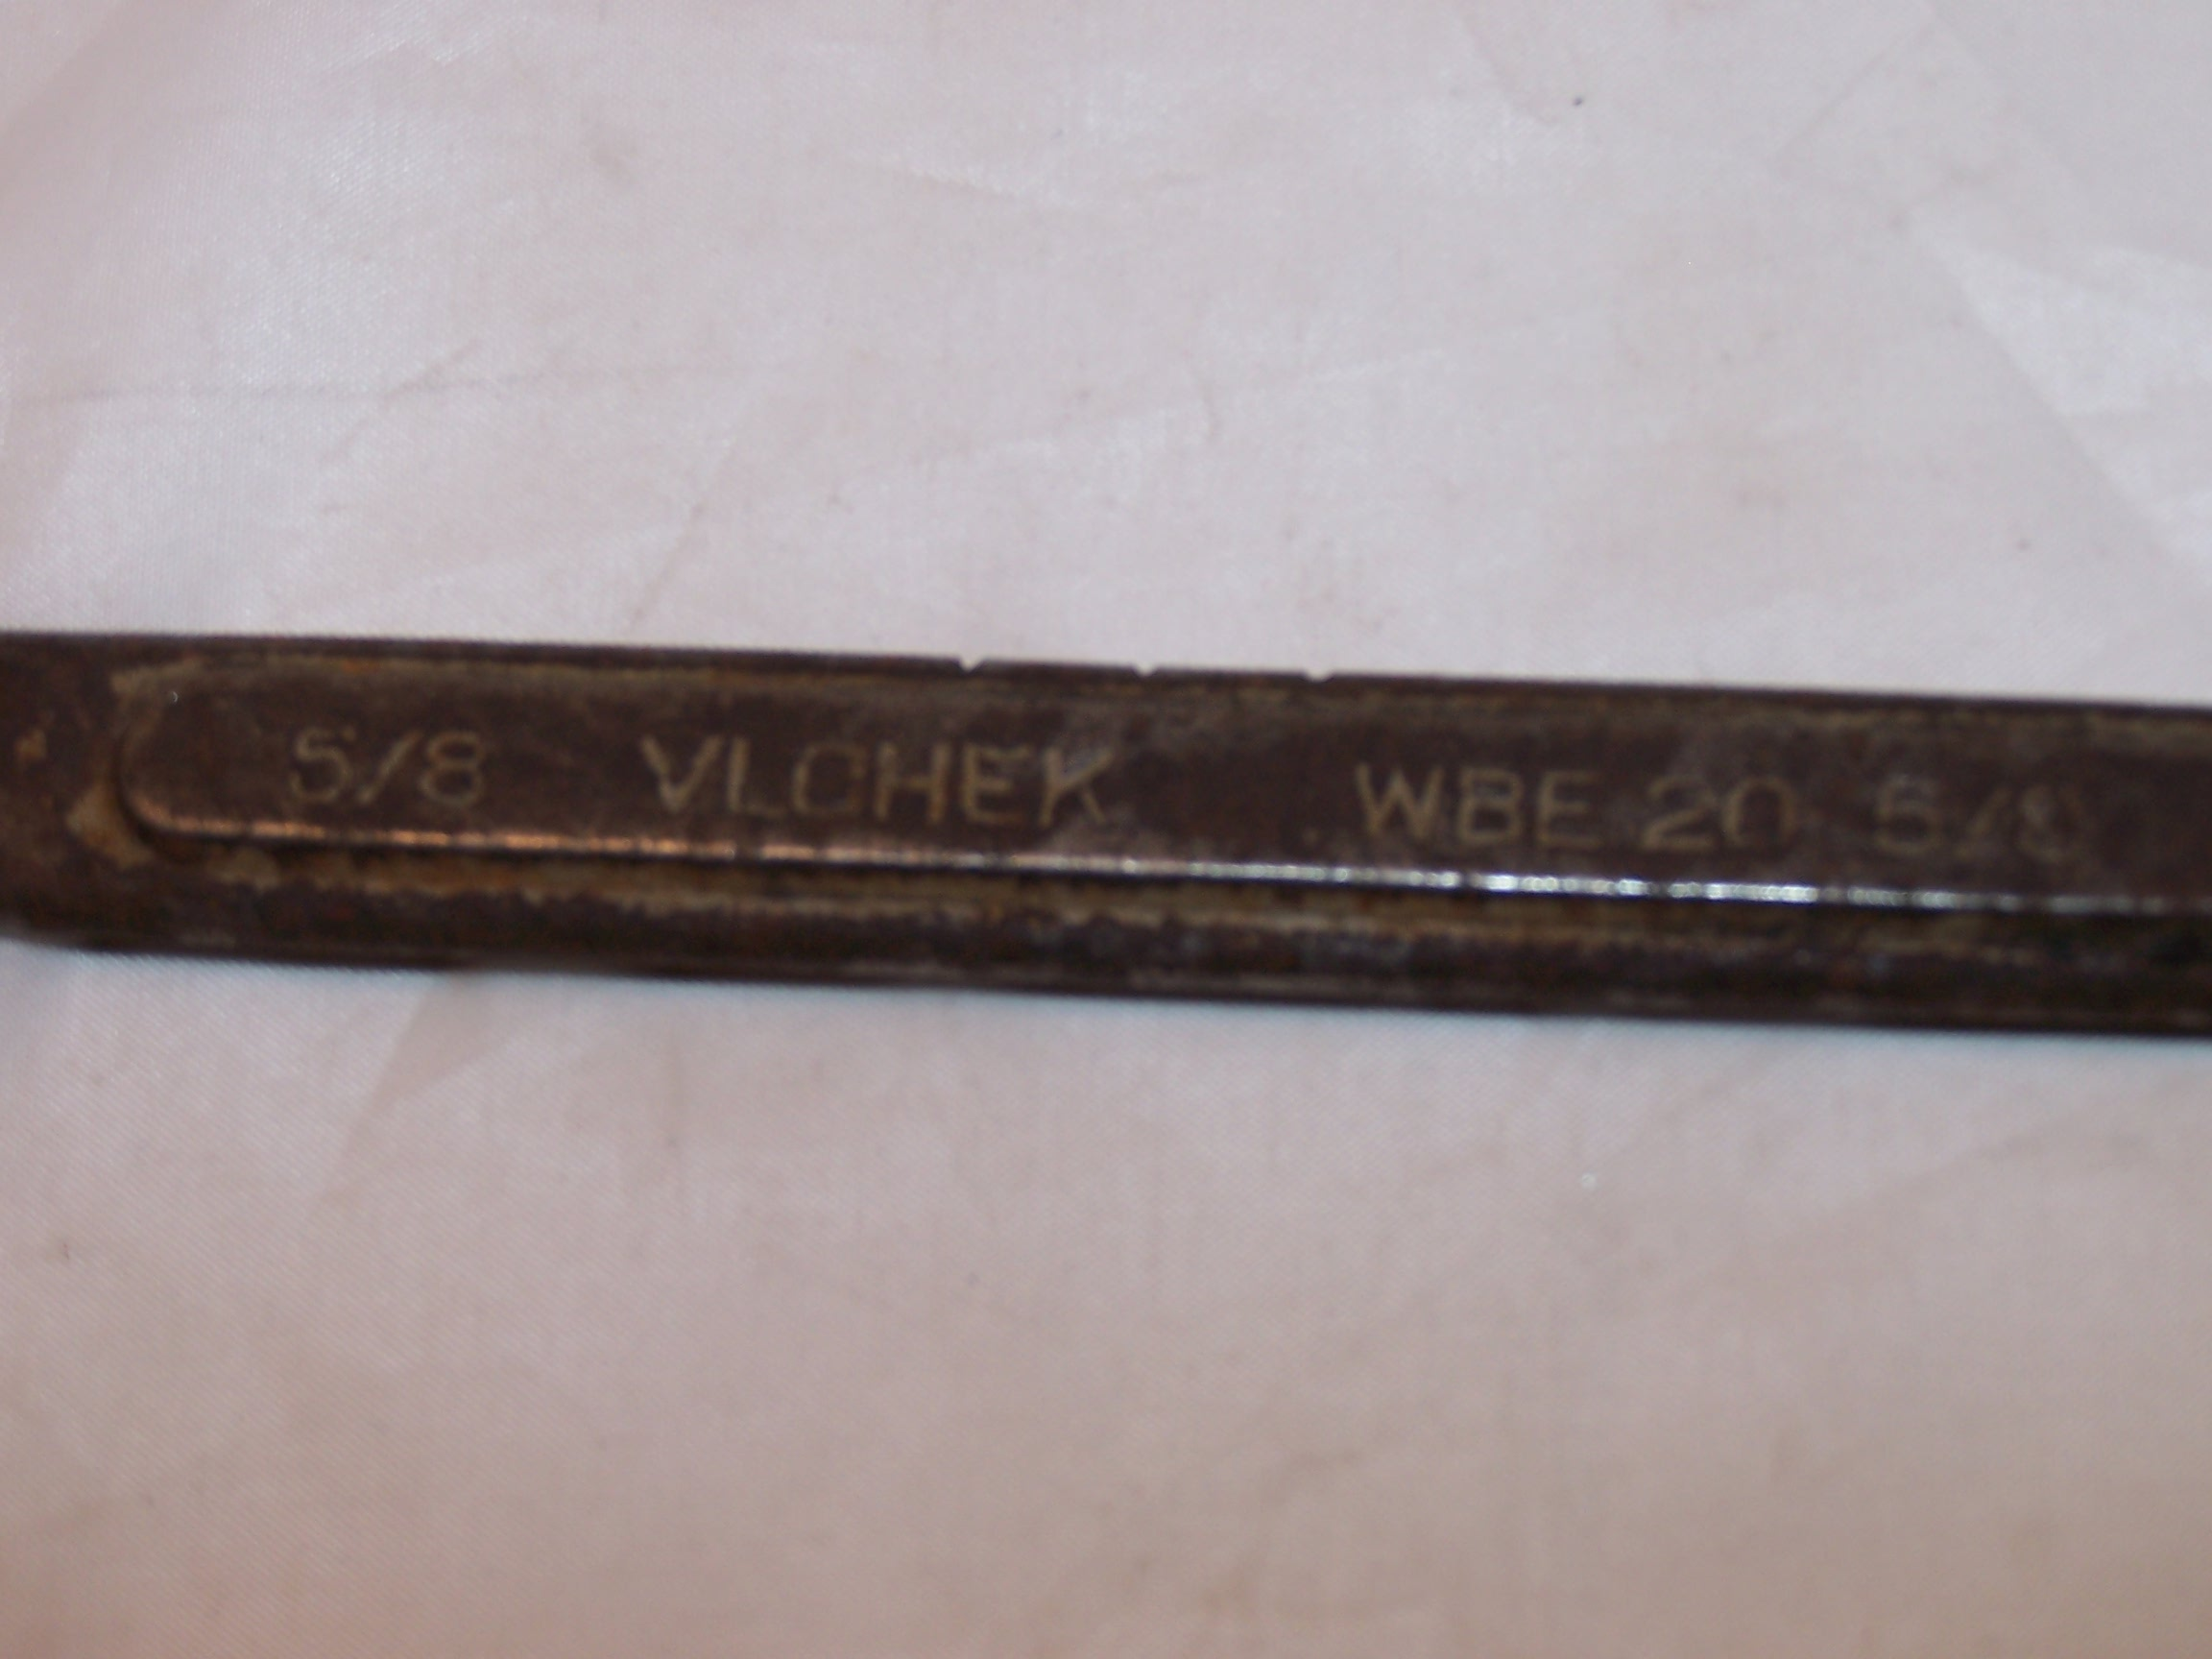 Image 1 of Vlchek Combination Wrench, WBE 20, Alloy Steel, Made in U.S.A., Vintage